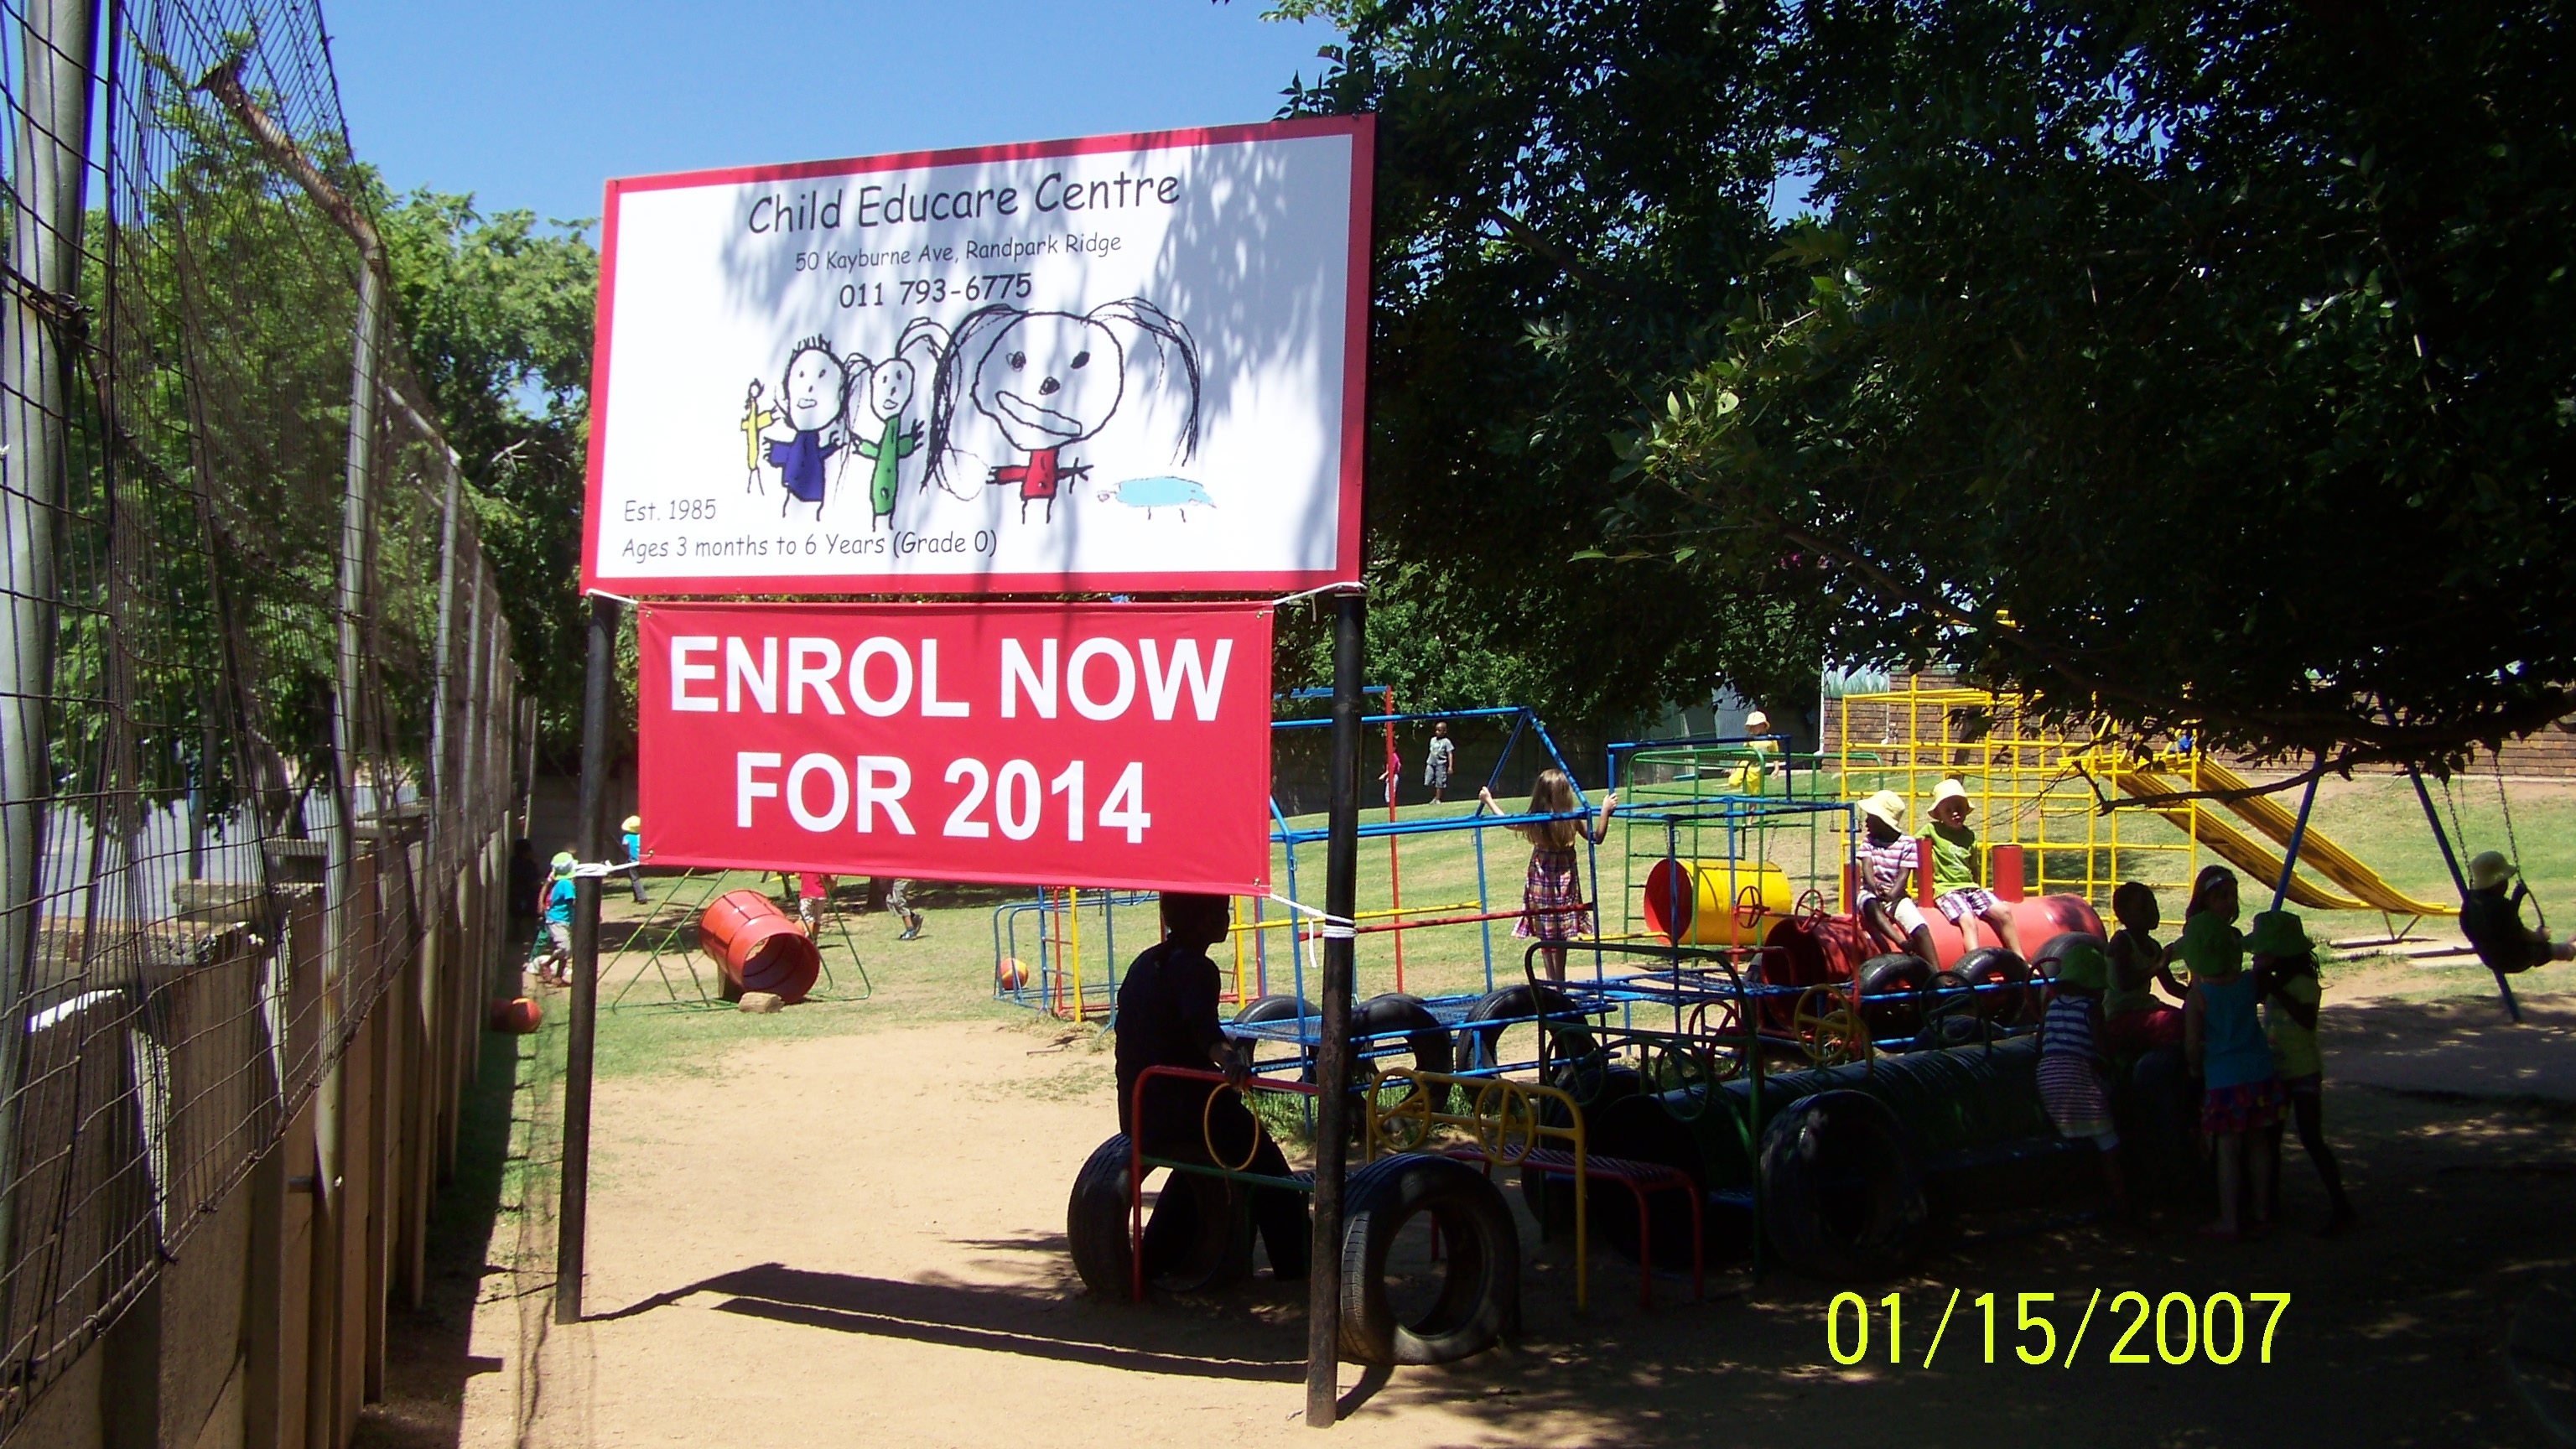 Child Educare Signage